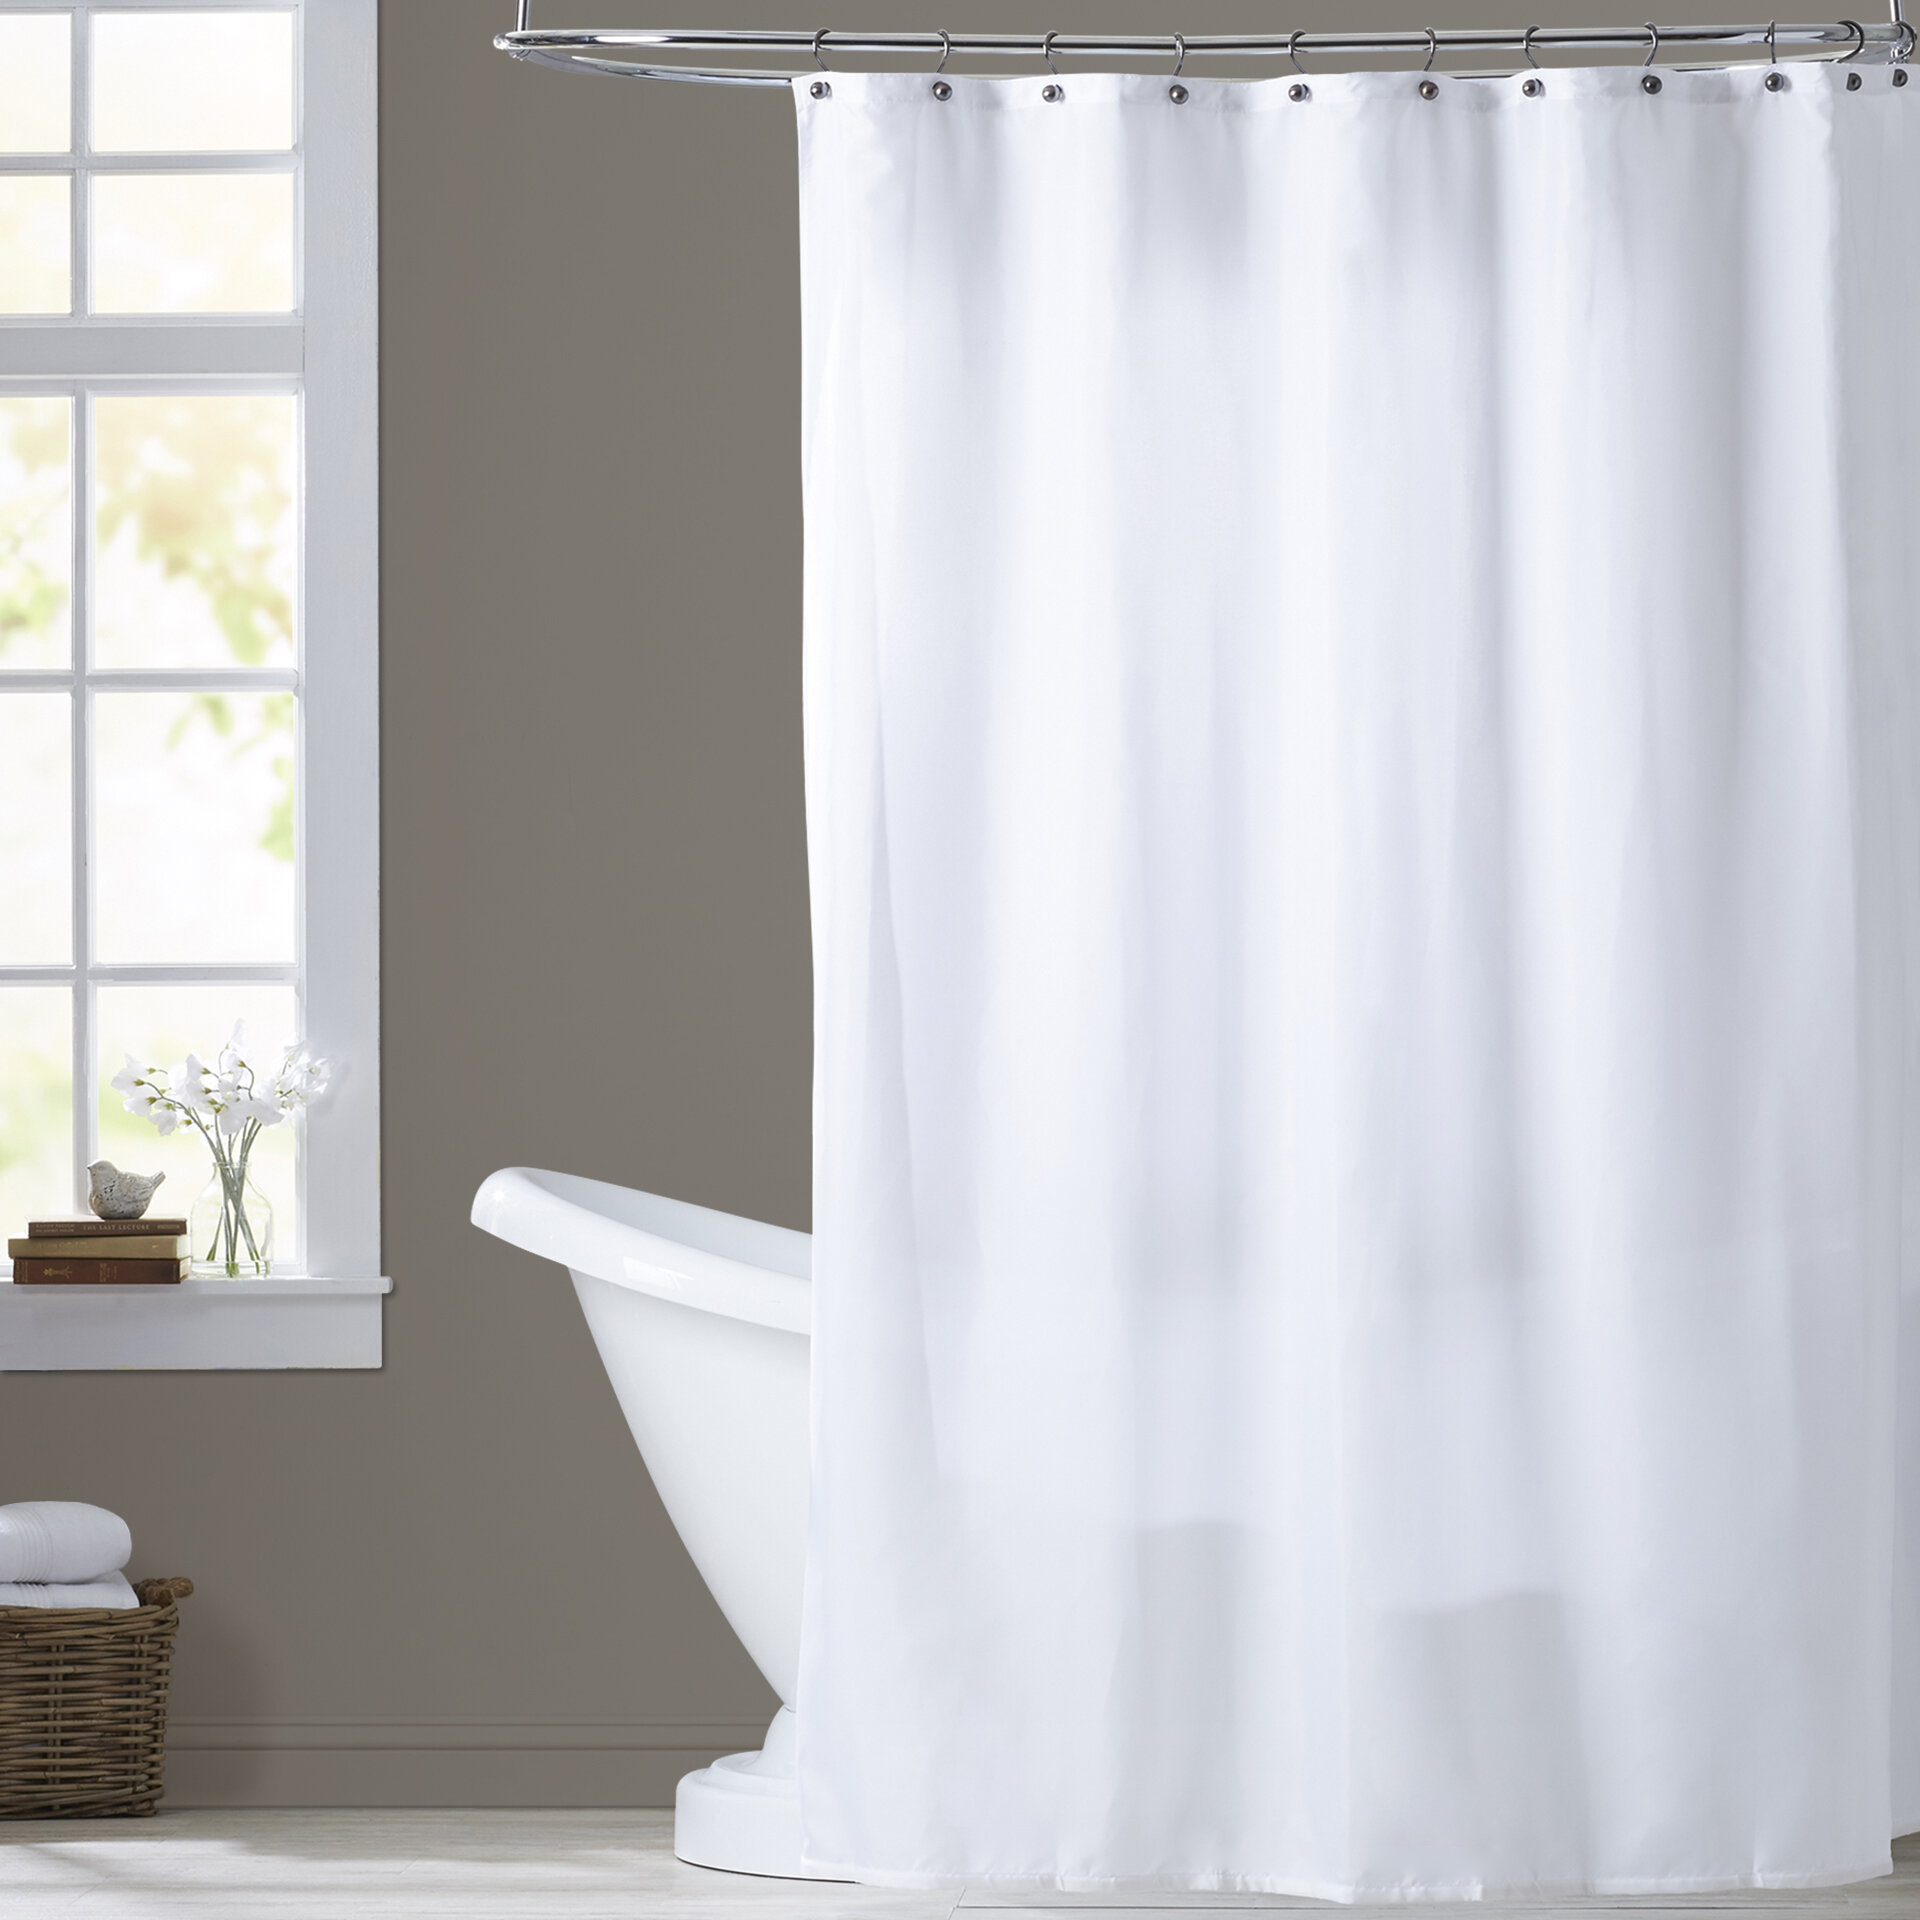 Berning Shower Curtain Liner